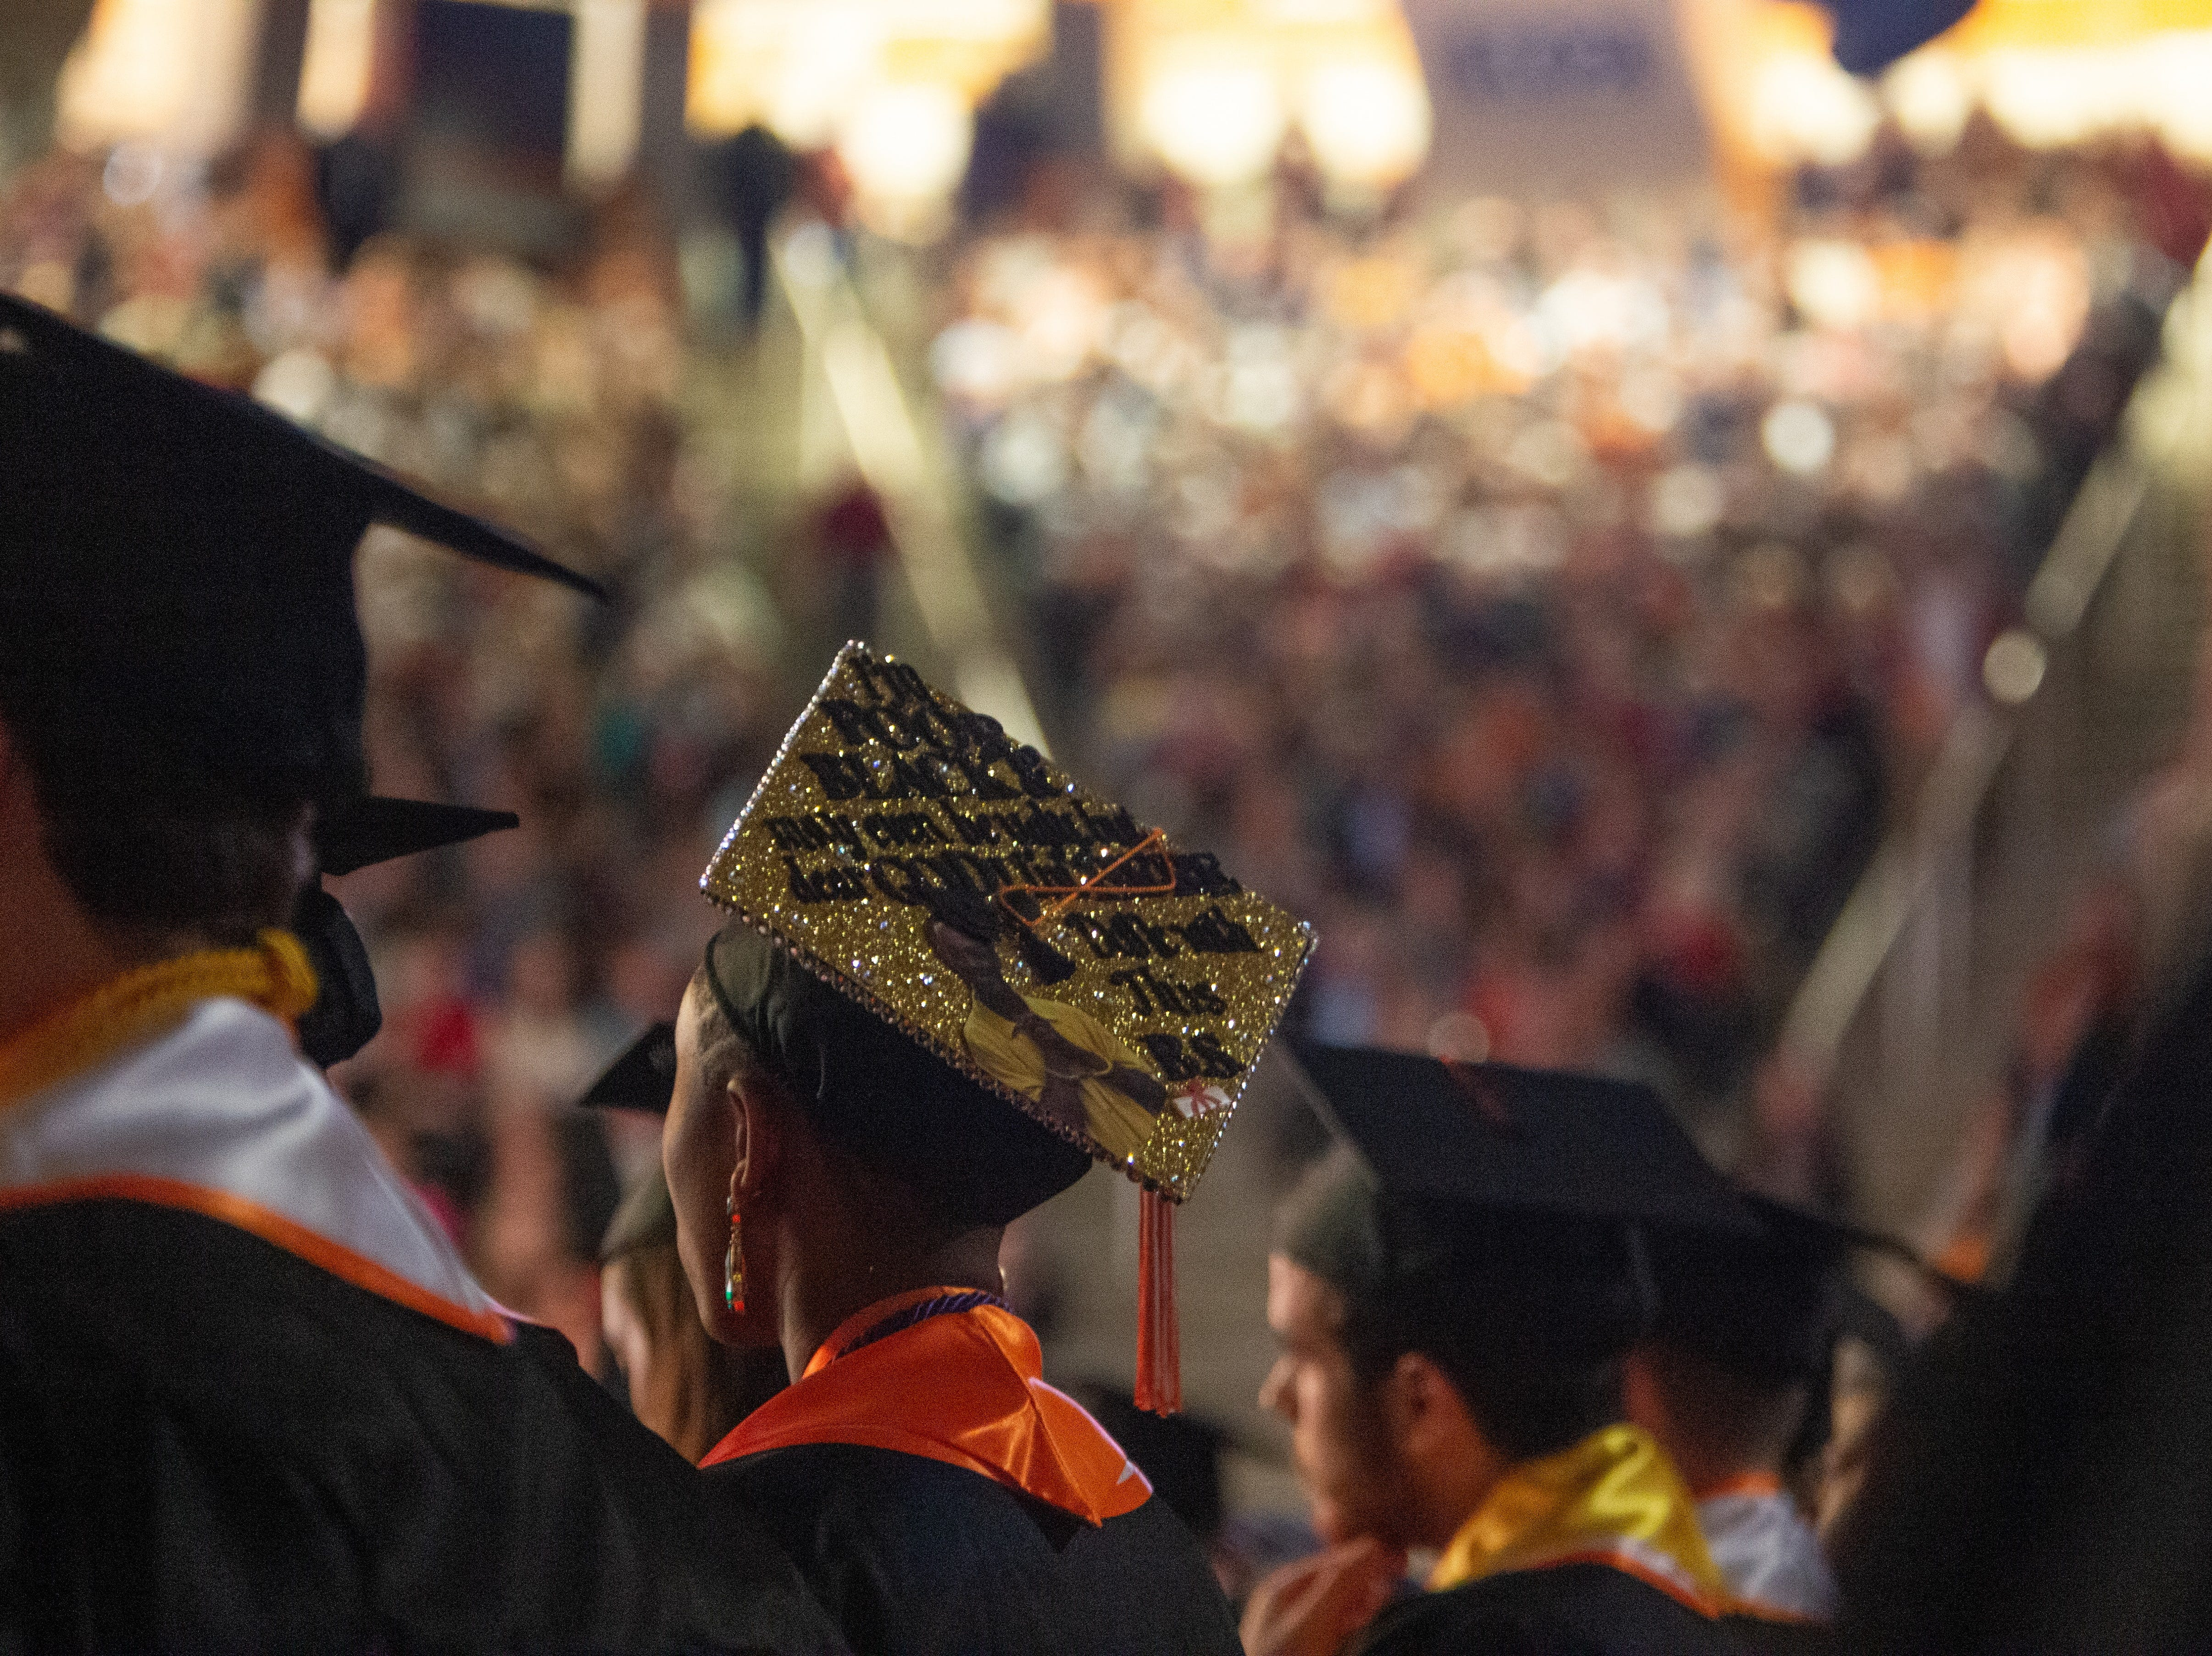 Some graduates decorated their caps to celebrate the final days at UT during the University of Tennessee winter Commencement ceremony at Thompson-Boling Assembly Center and Arena in Knoxville Friday, Dec. 14, 2018.